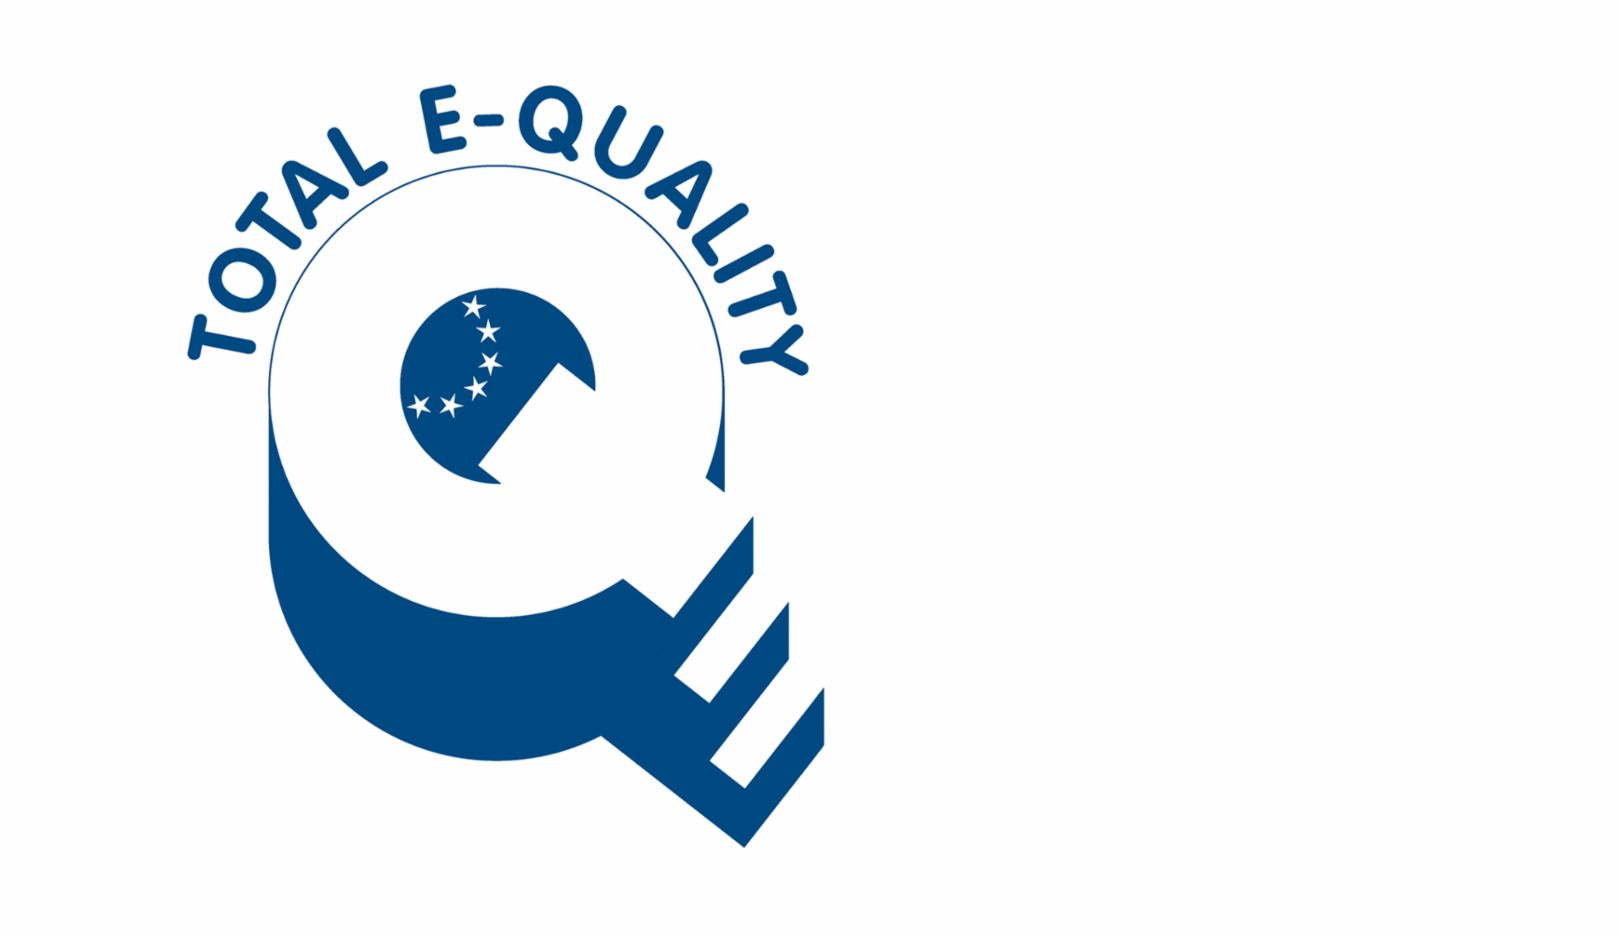 TOTAL E-QUALITY, Logo, 2015